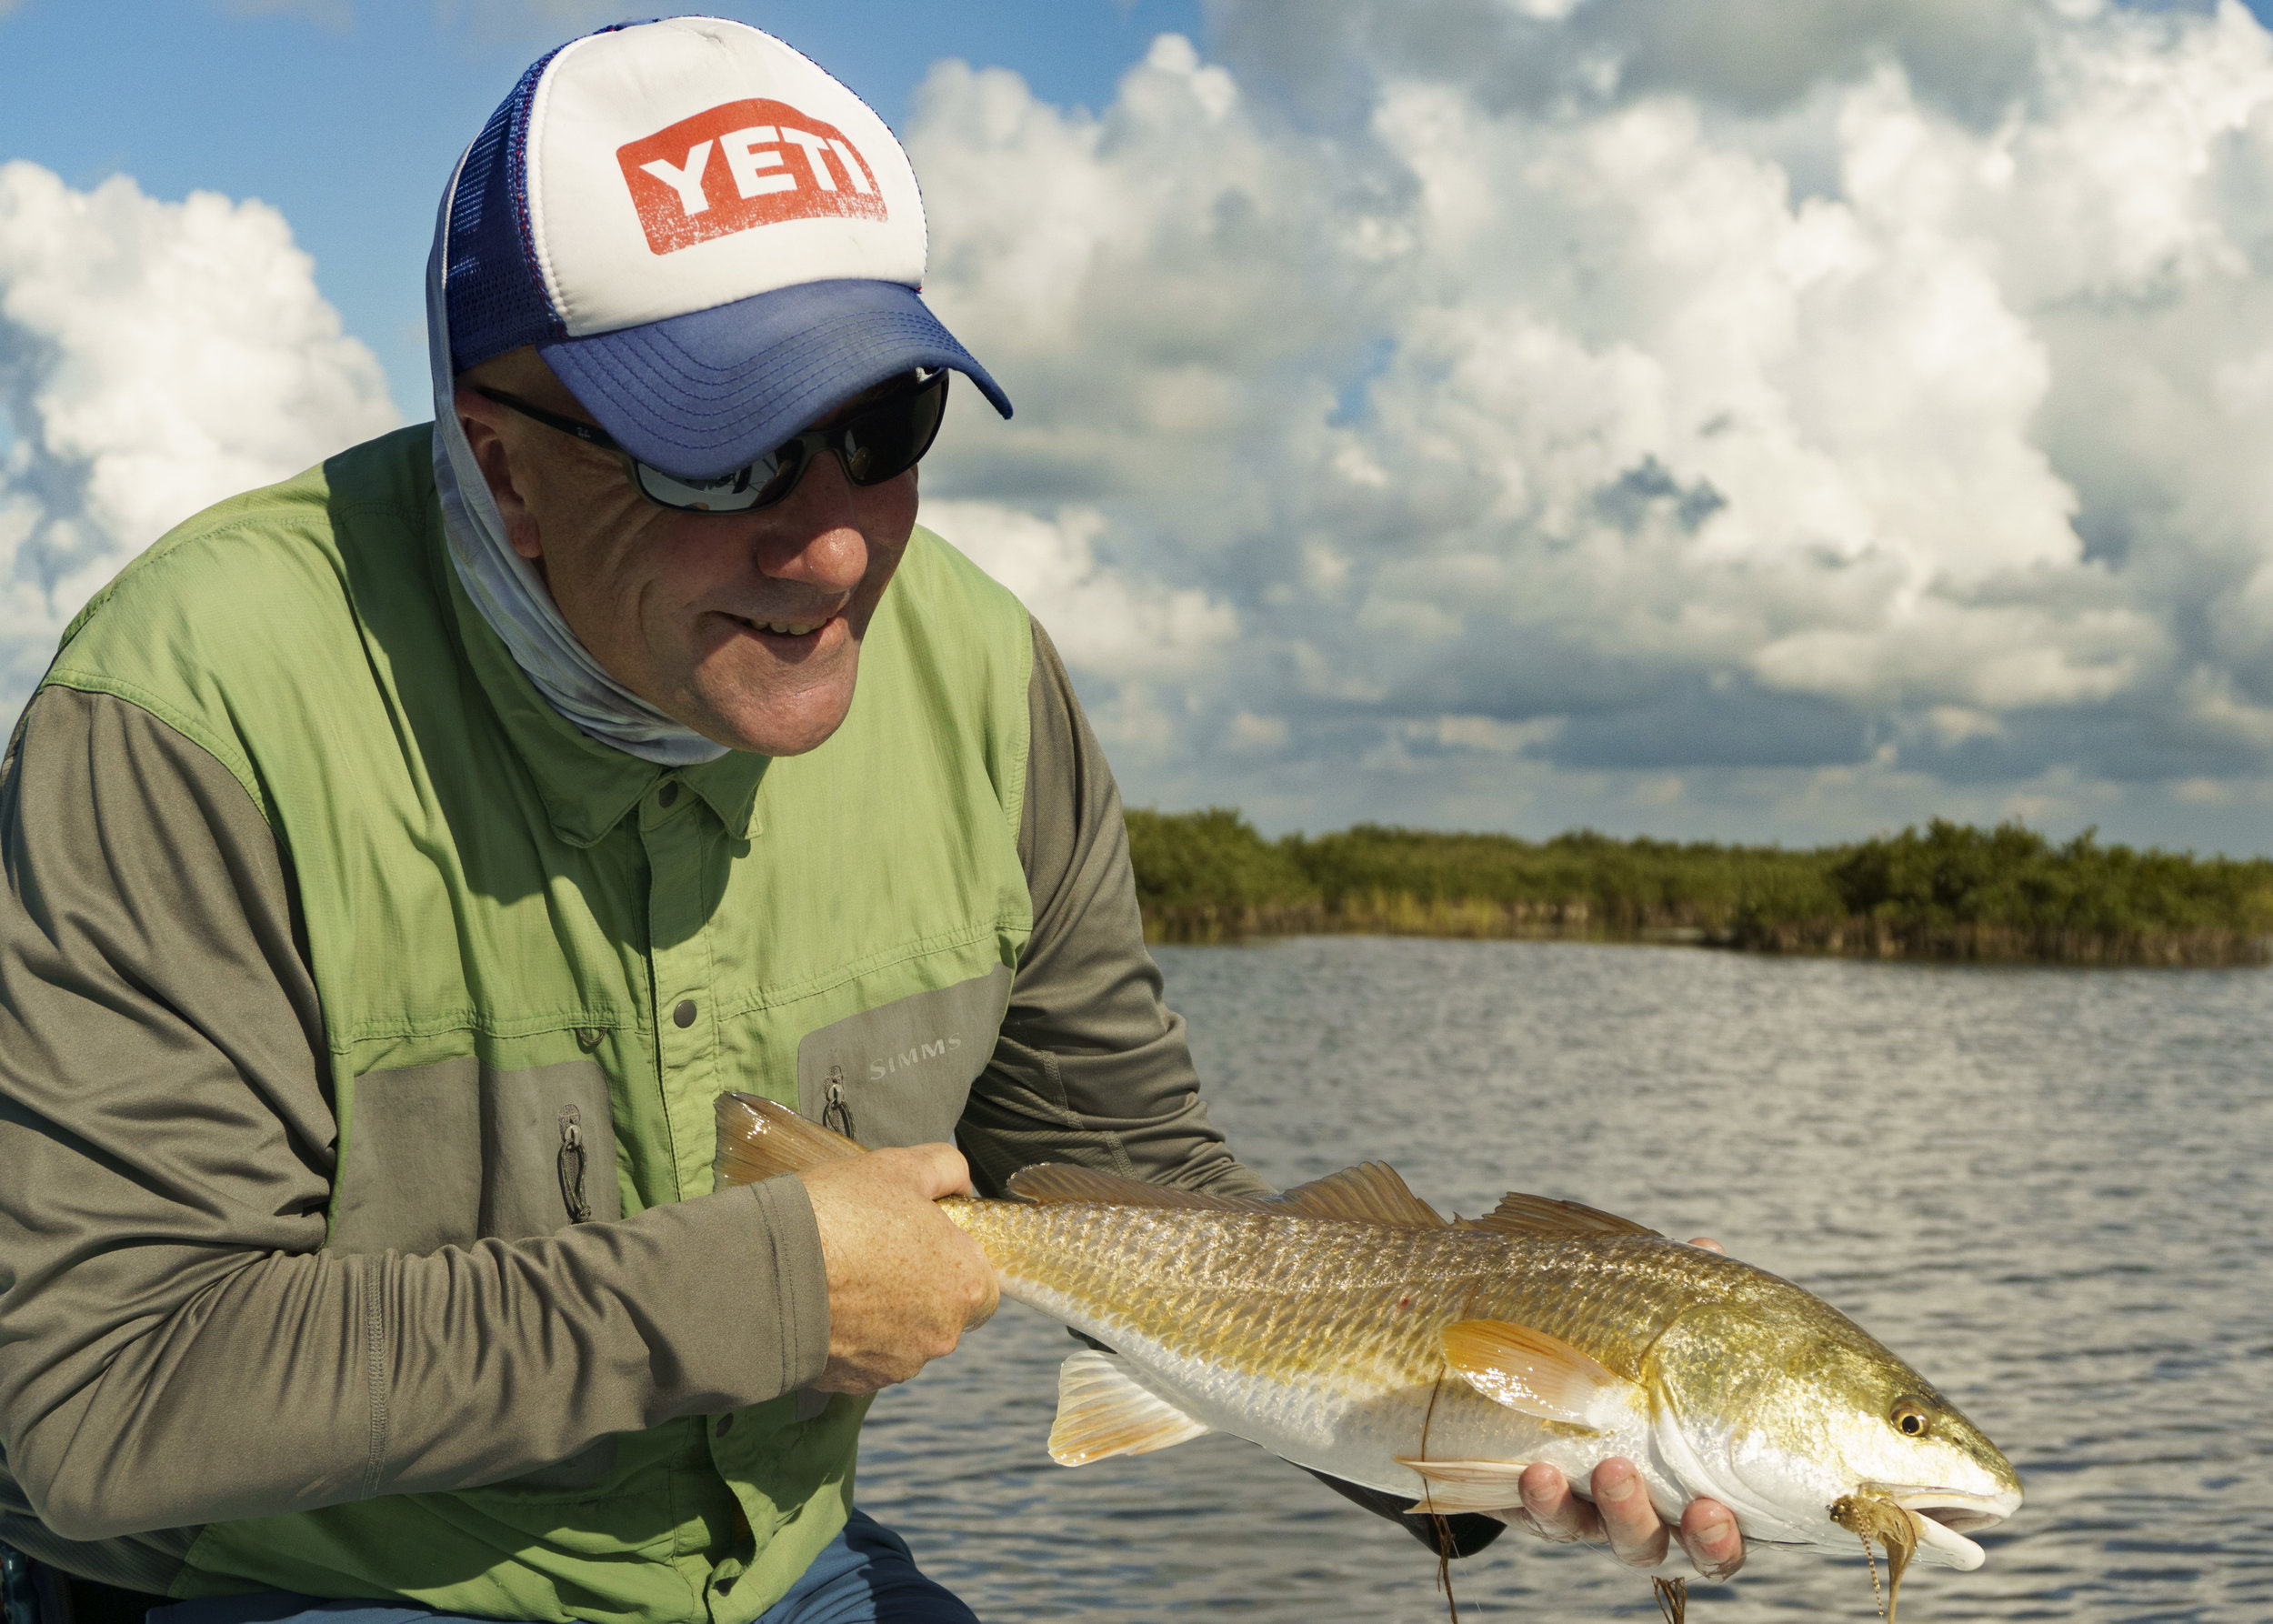 Winston with a Redfish